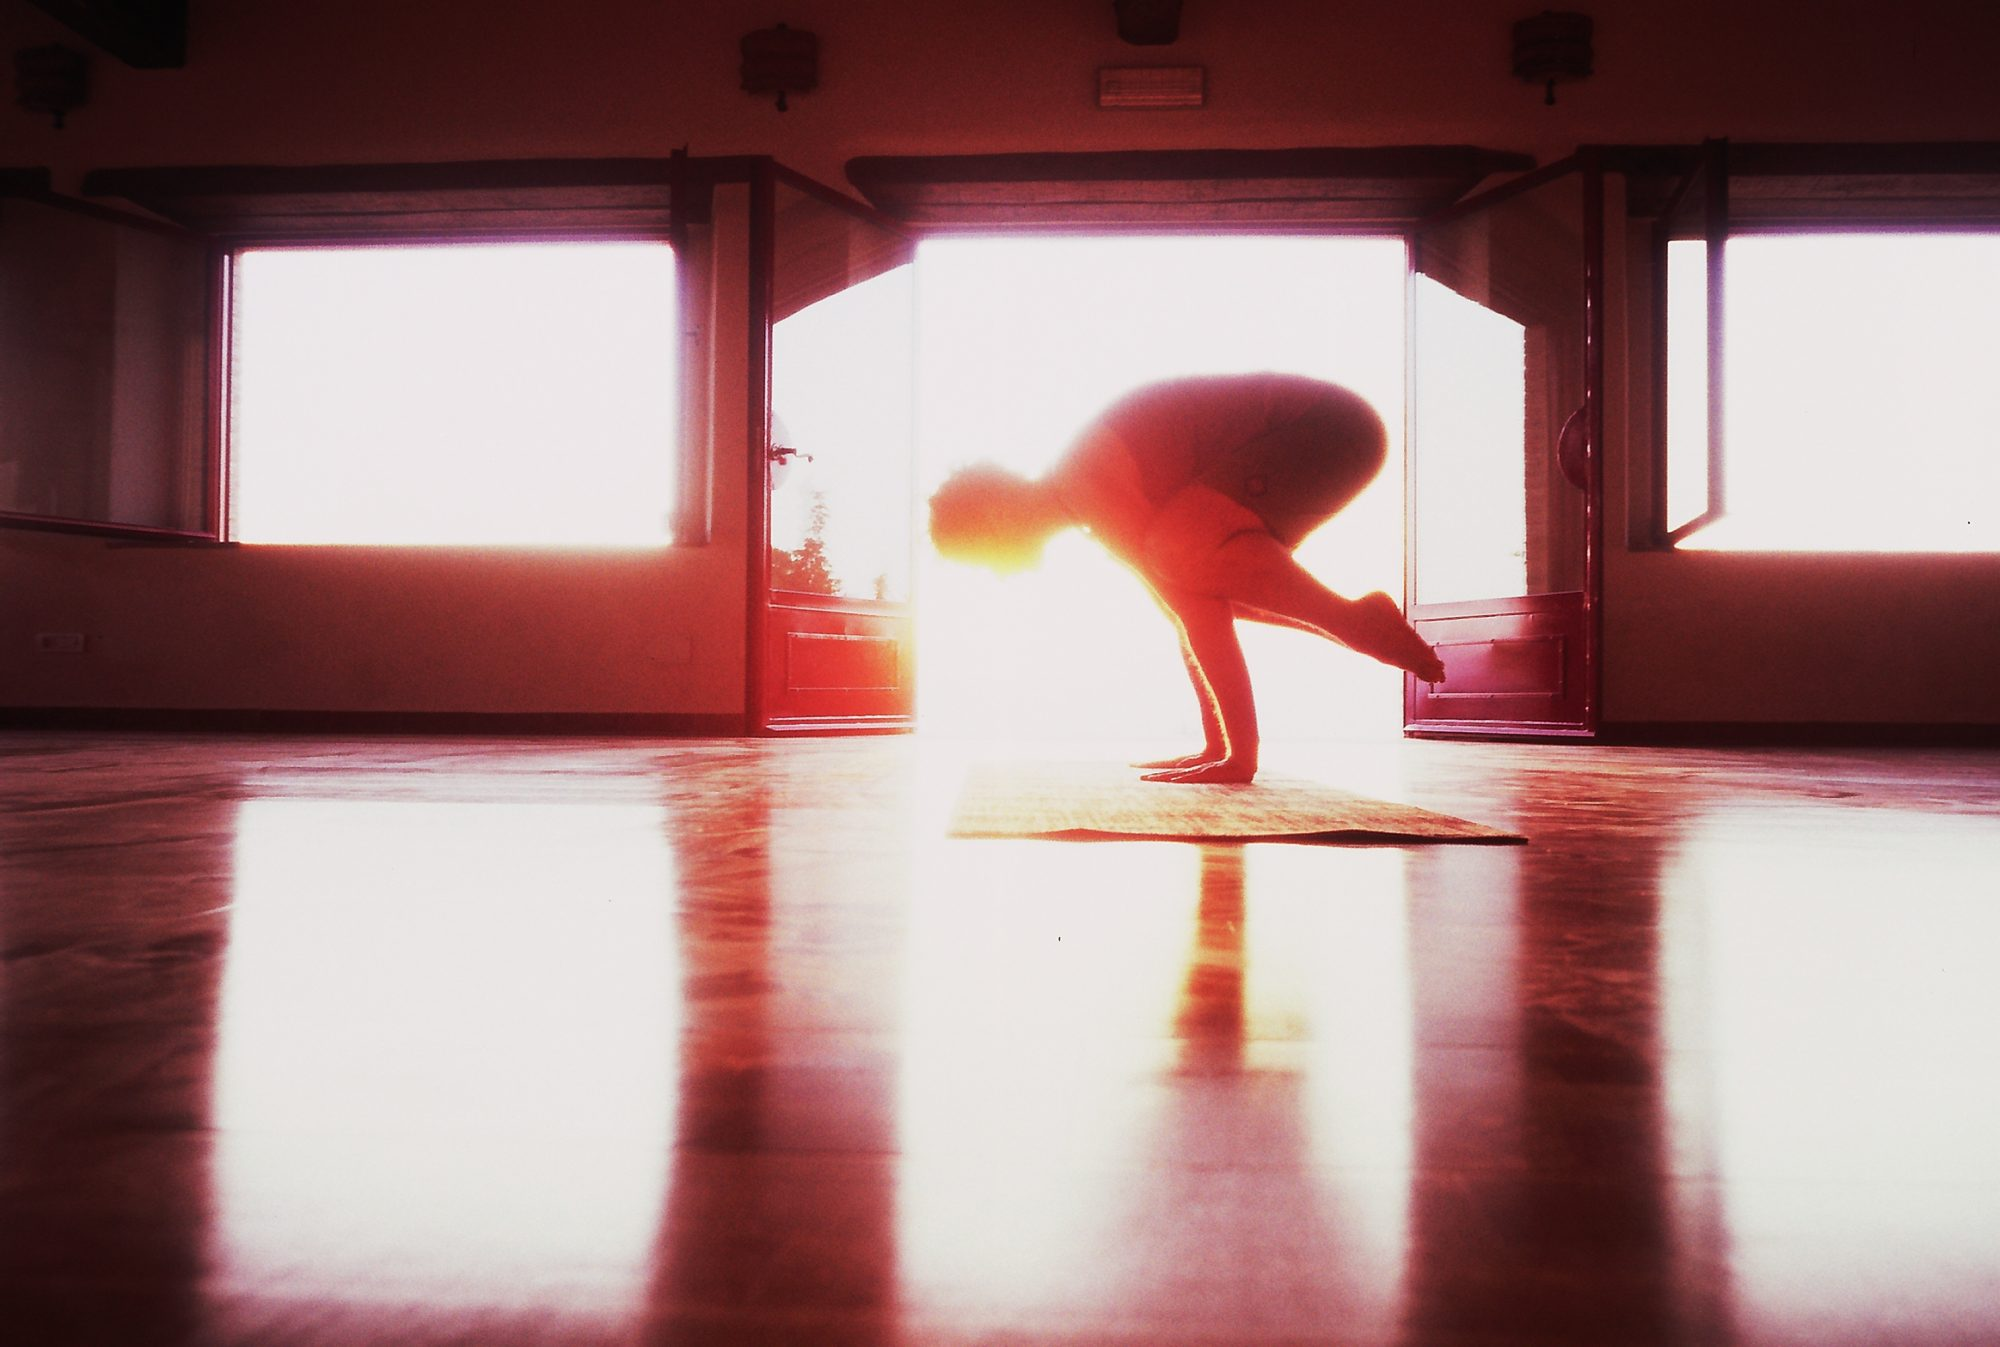 Carl Hargreaves in Crow yoga pose